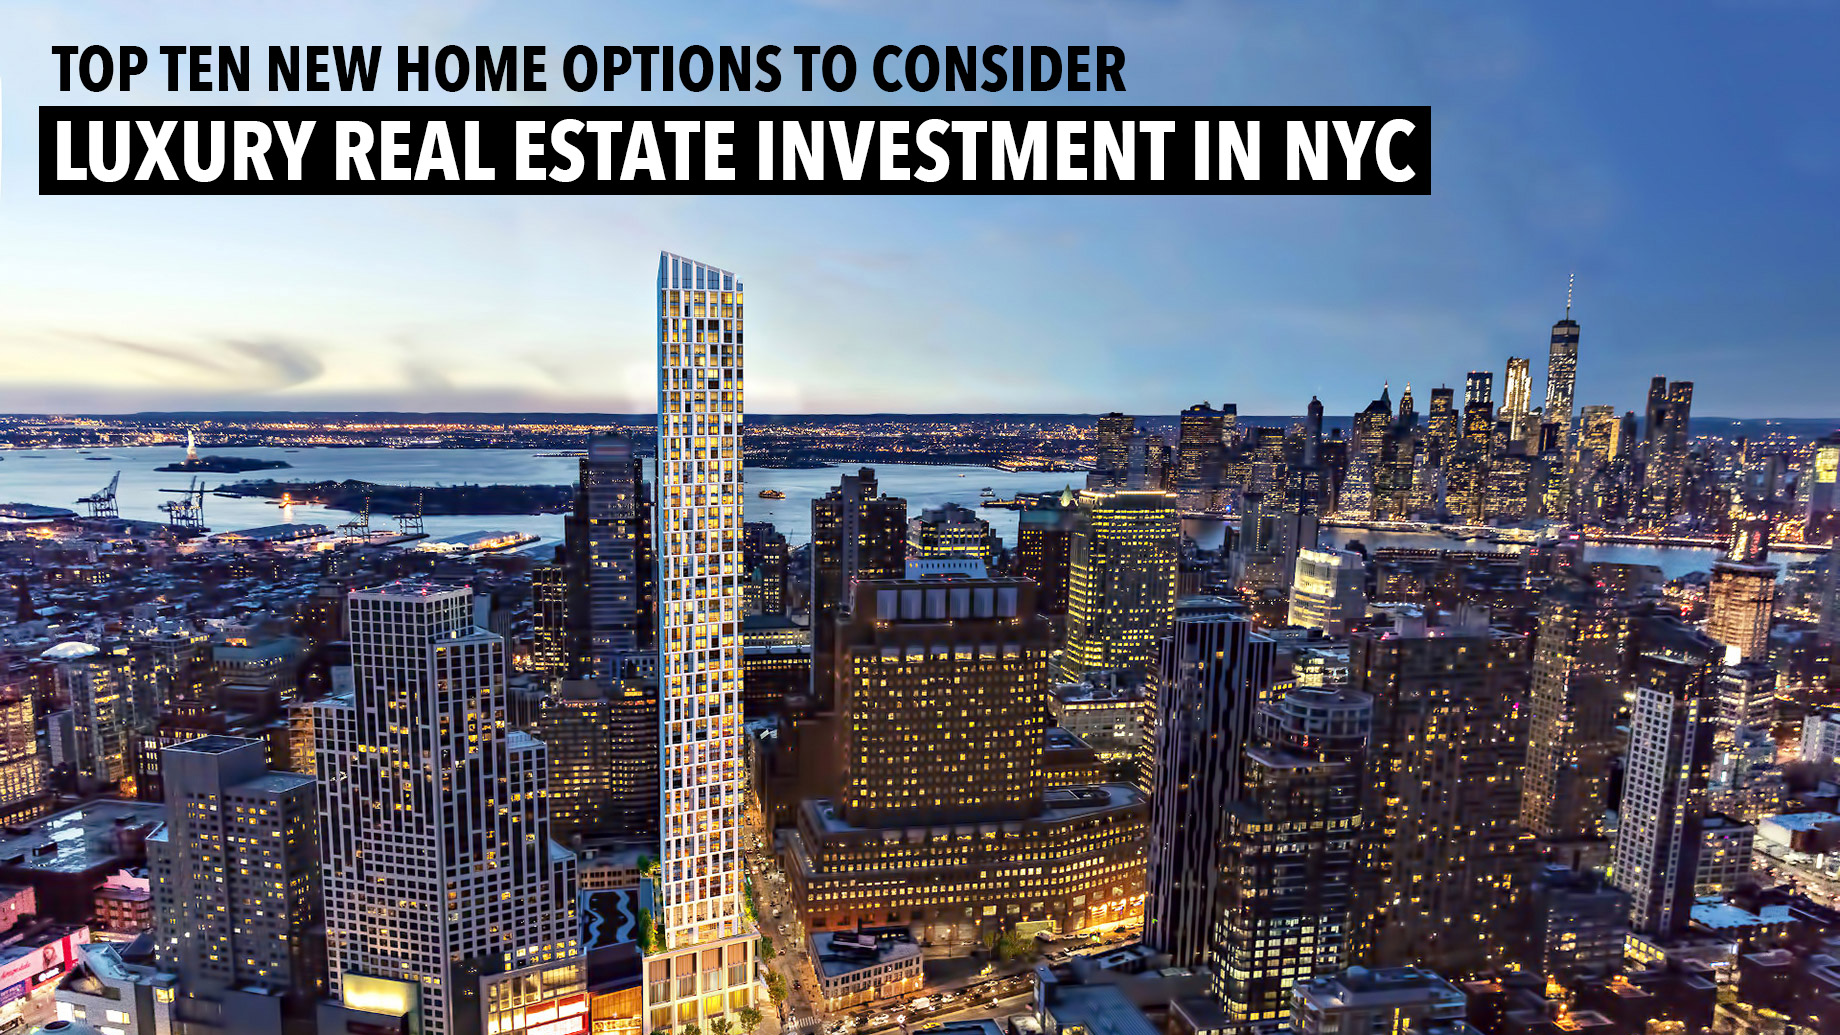 Top Ten New Home Options to Consider for Luxury Real Estate Investment in NYC